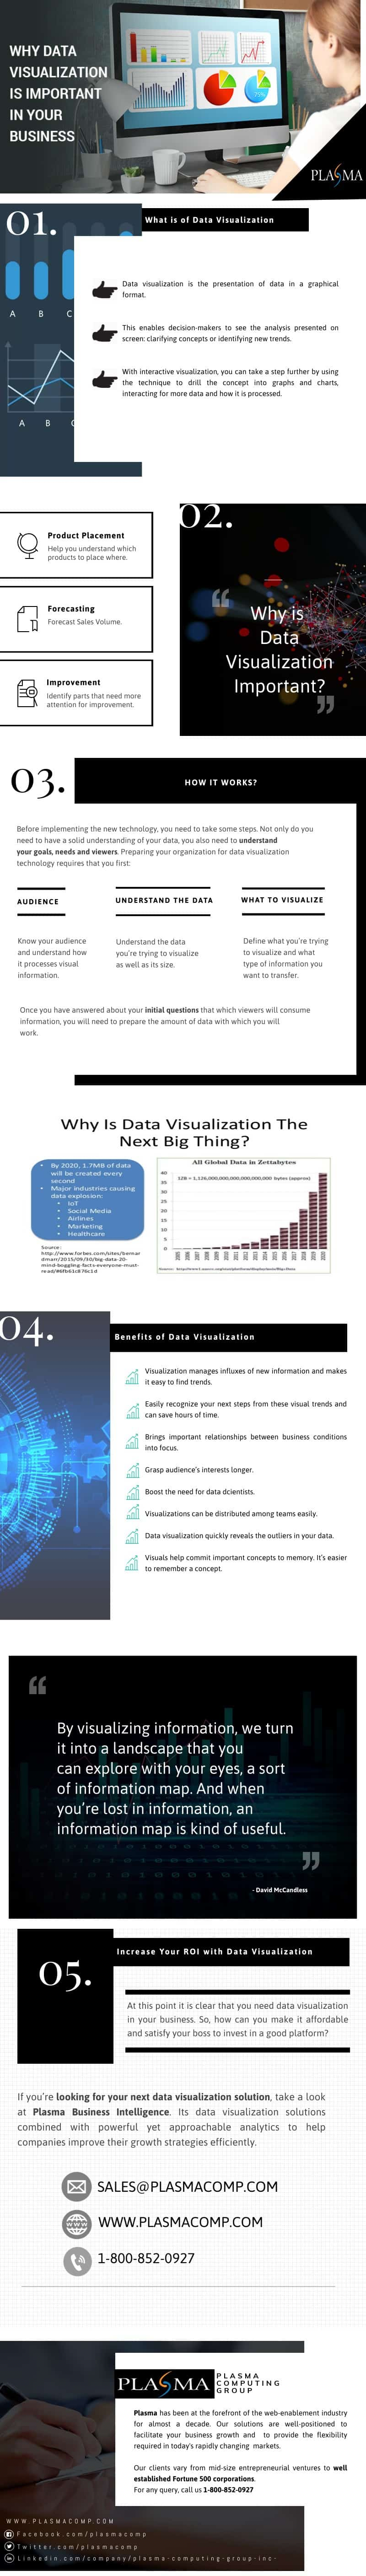 Data Visualization for business